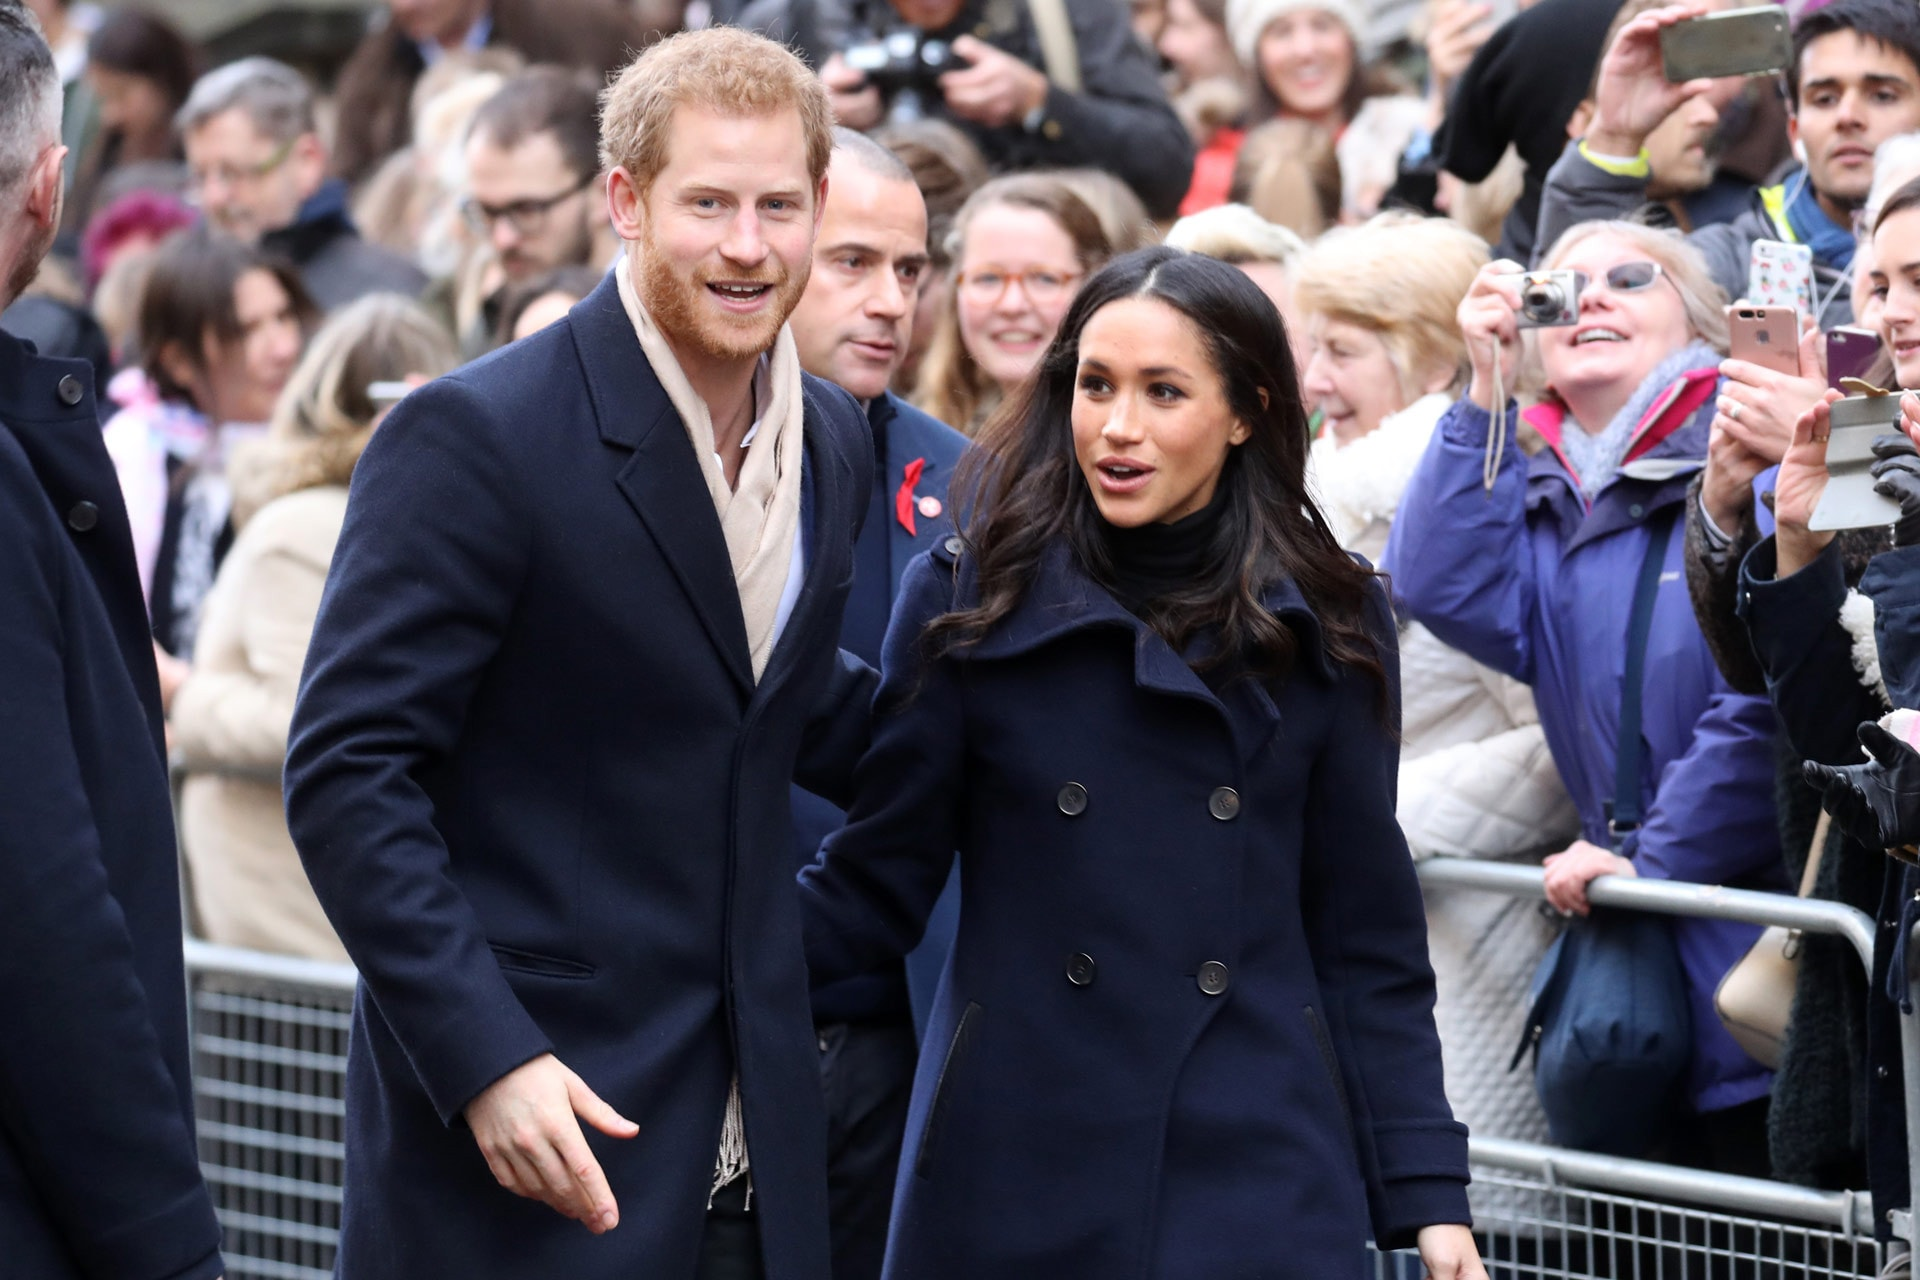 Prince Harry And Meghan Markle Ask That Wedding Gifts Go To Charity